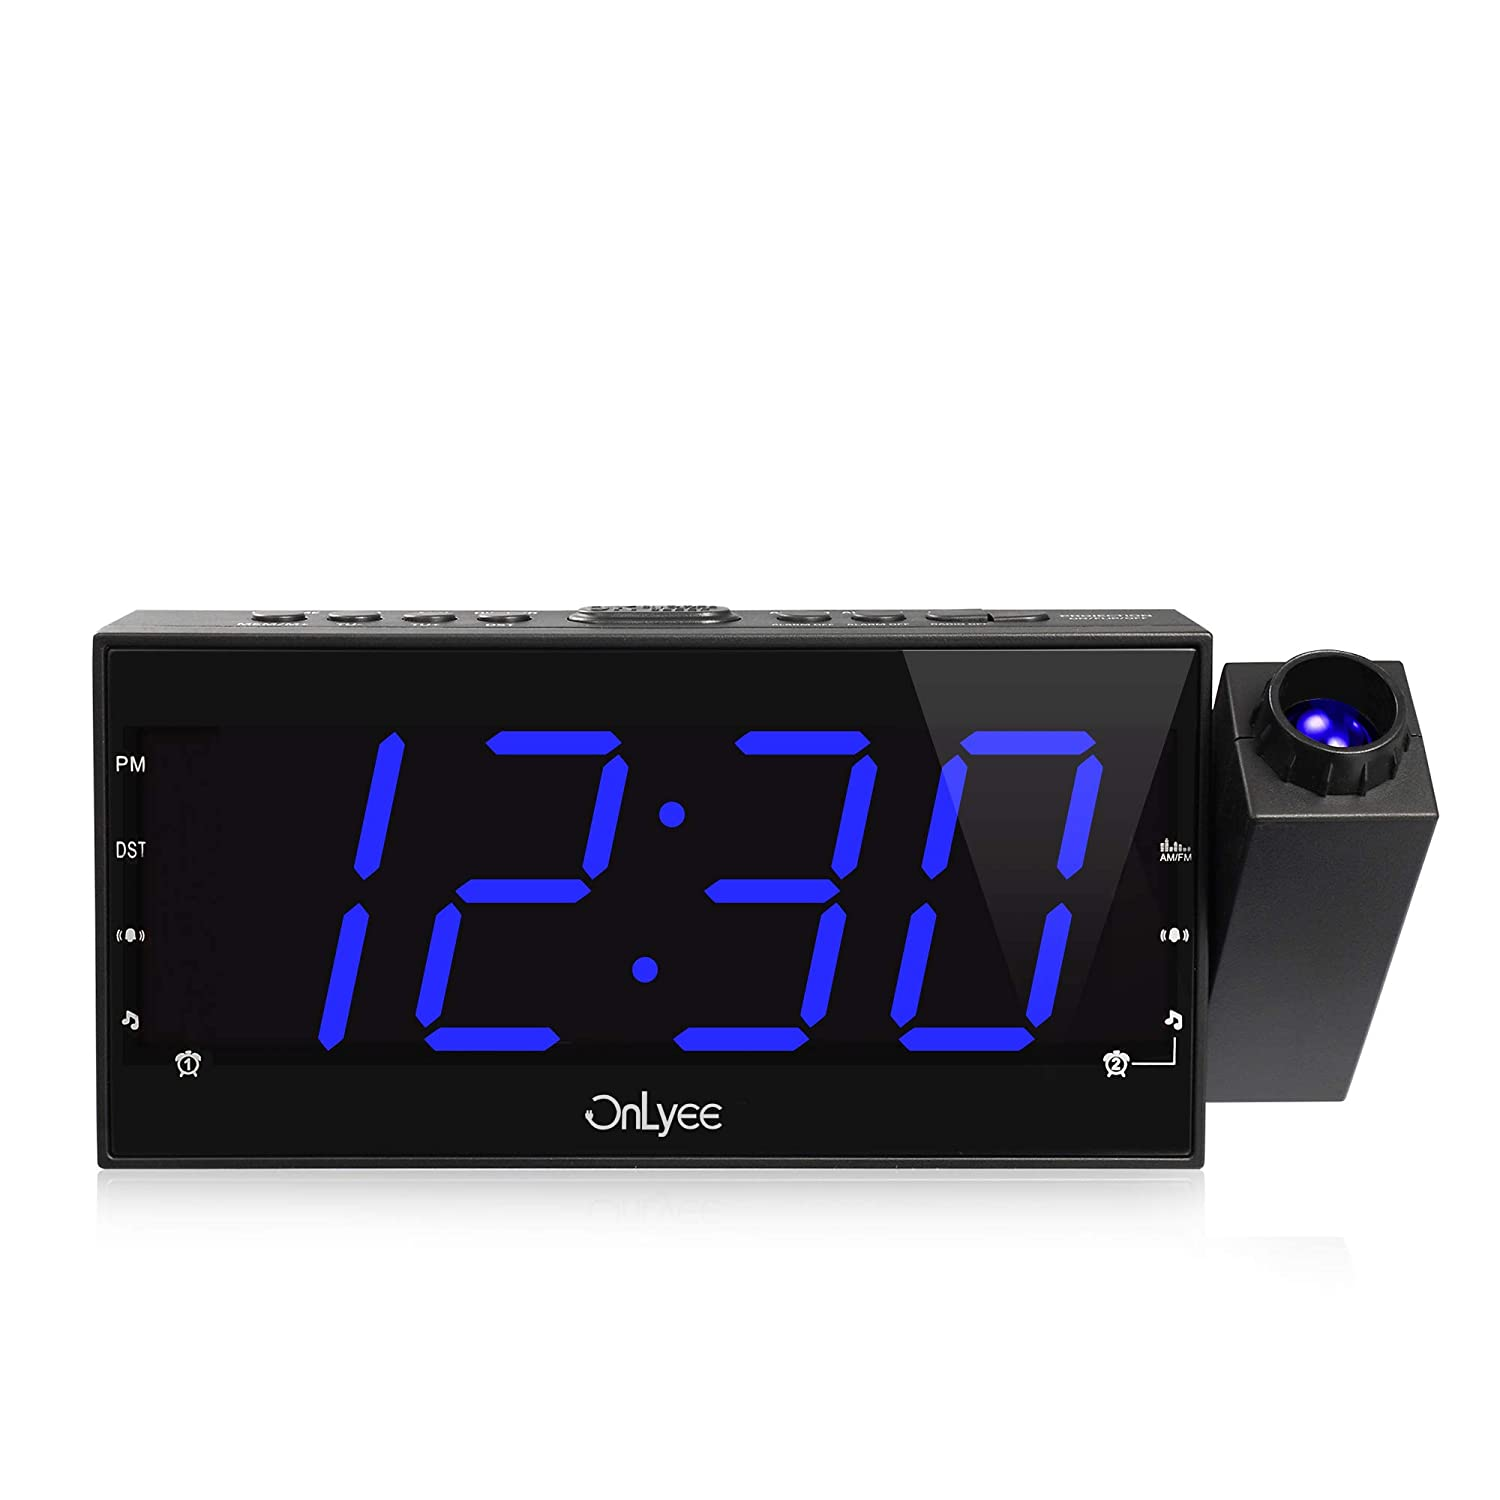 "OnLyee Projection Ceiling Wall Clock, AM FM Radio Alarm Clock, 7"" LED Digital Desk/Shelf Clock with Dimmer, USB Charging, AC Powered and Battery Backup for Bedroom, Kitchen, Kids"